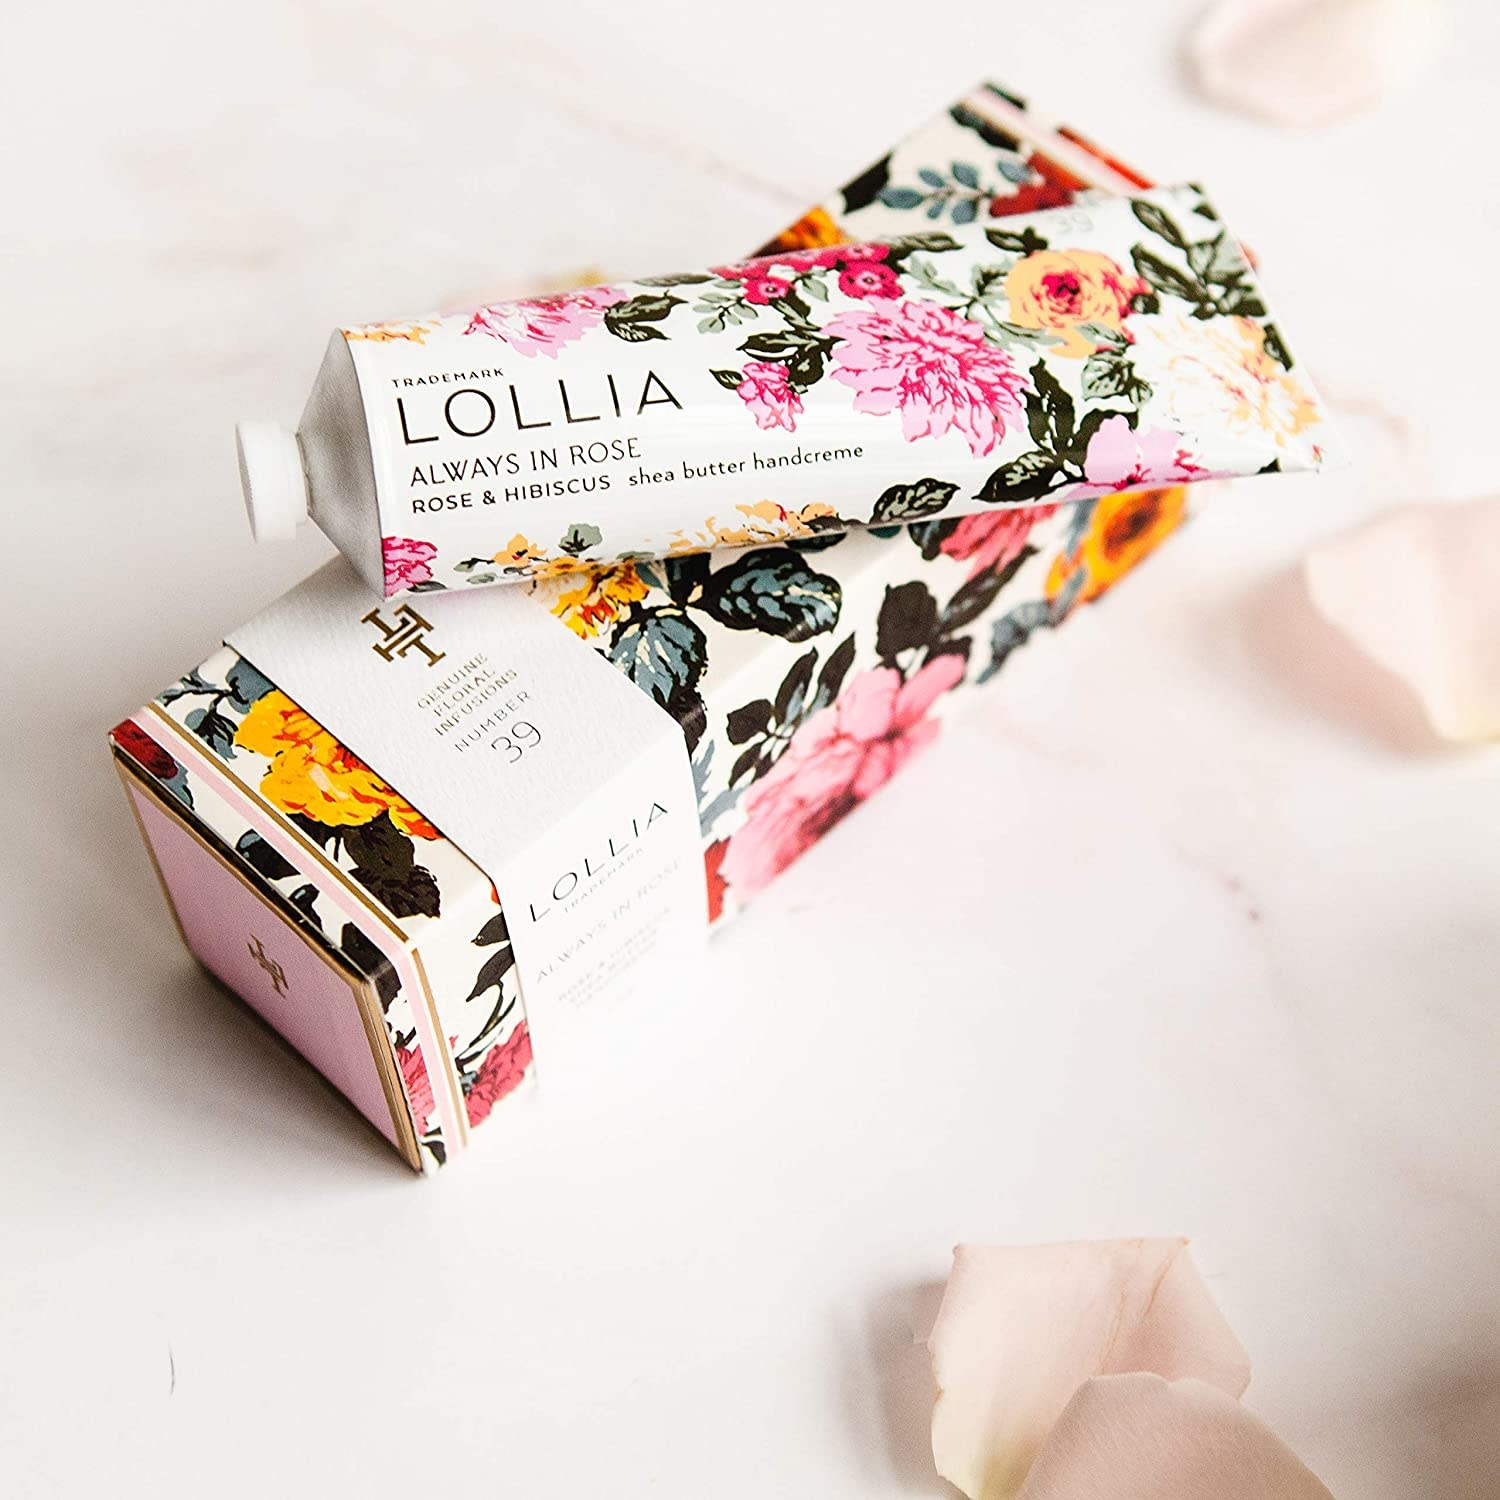 Burwell Industries Lollia Shea Butter Handcreme 4 oz./ Always in Rose